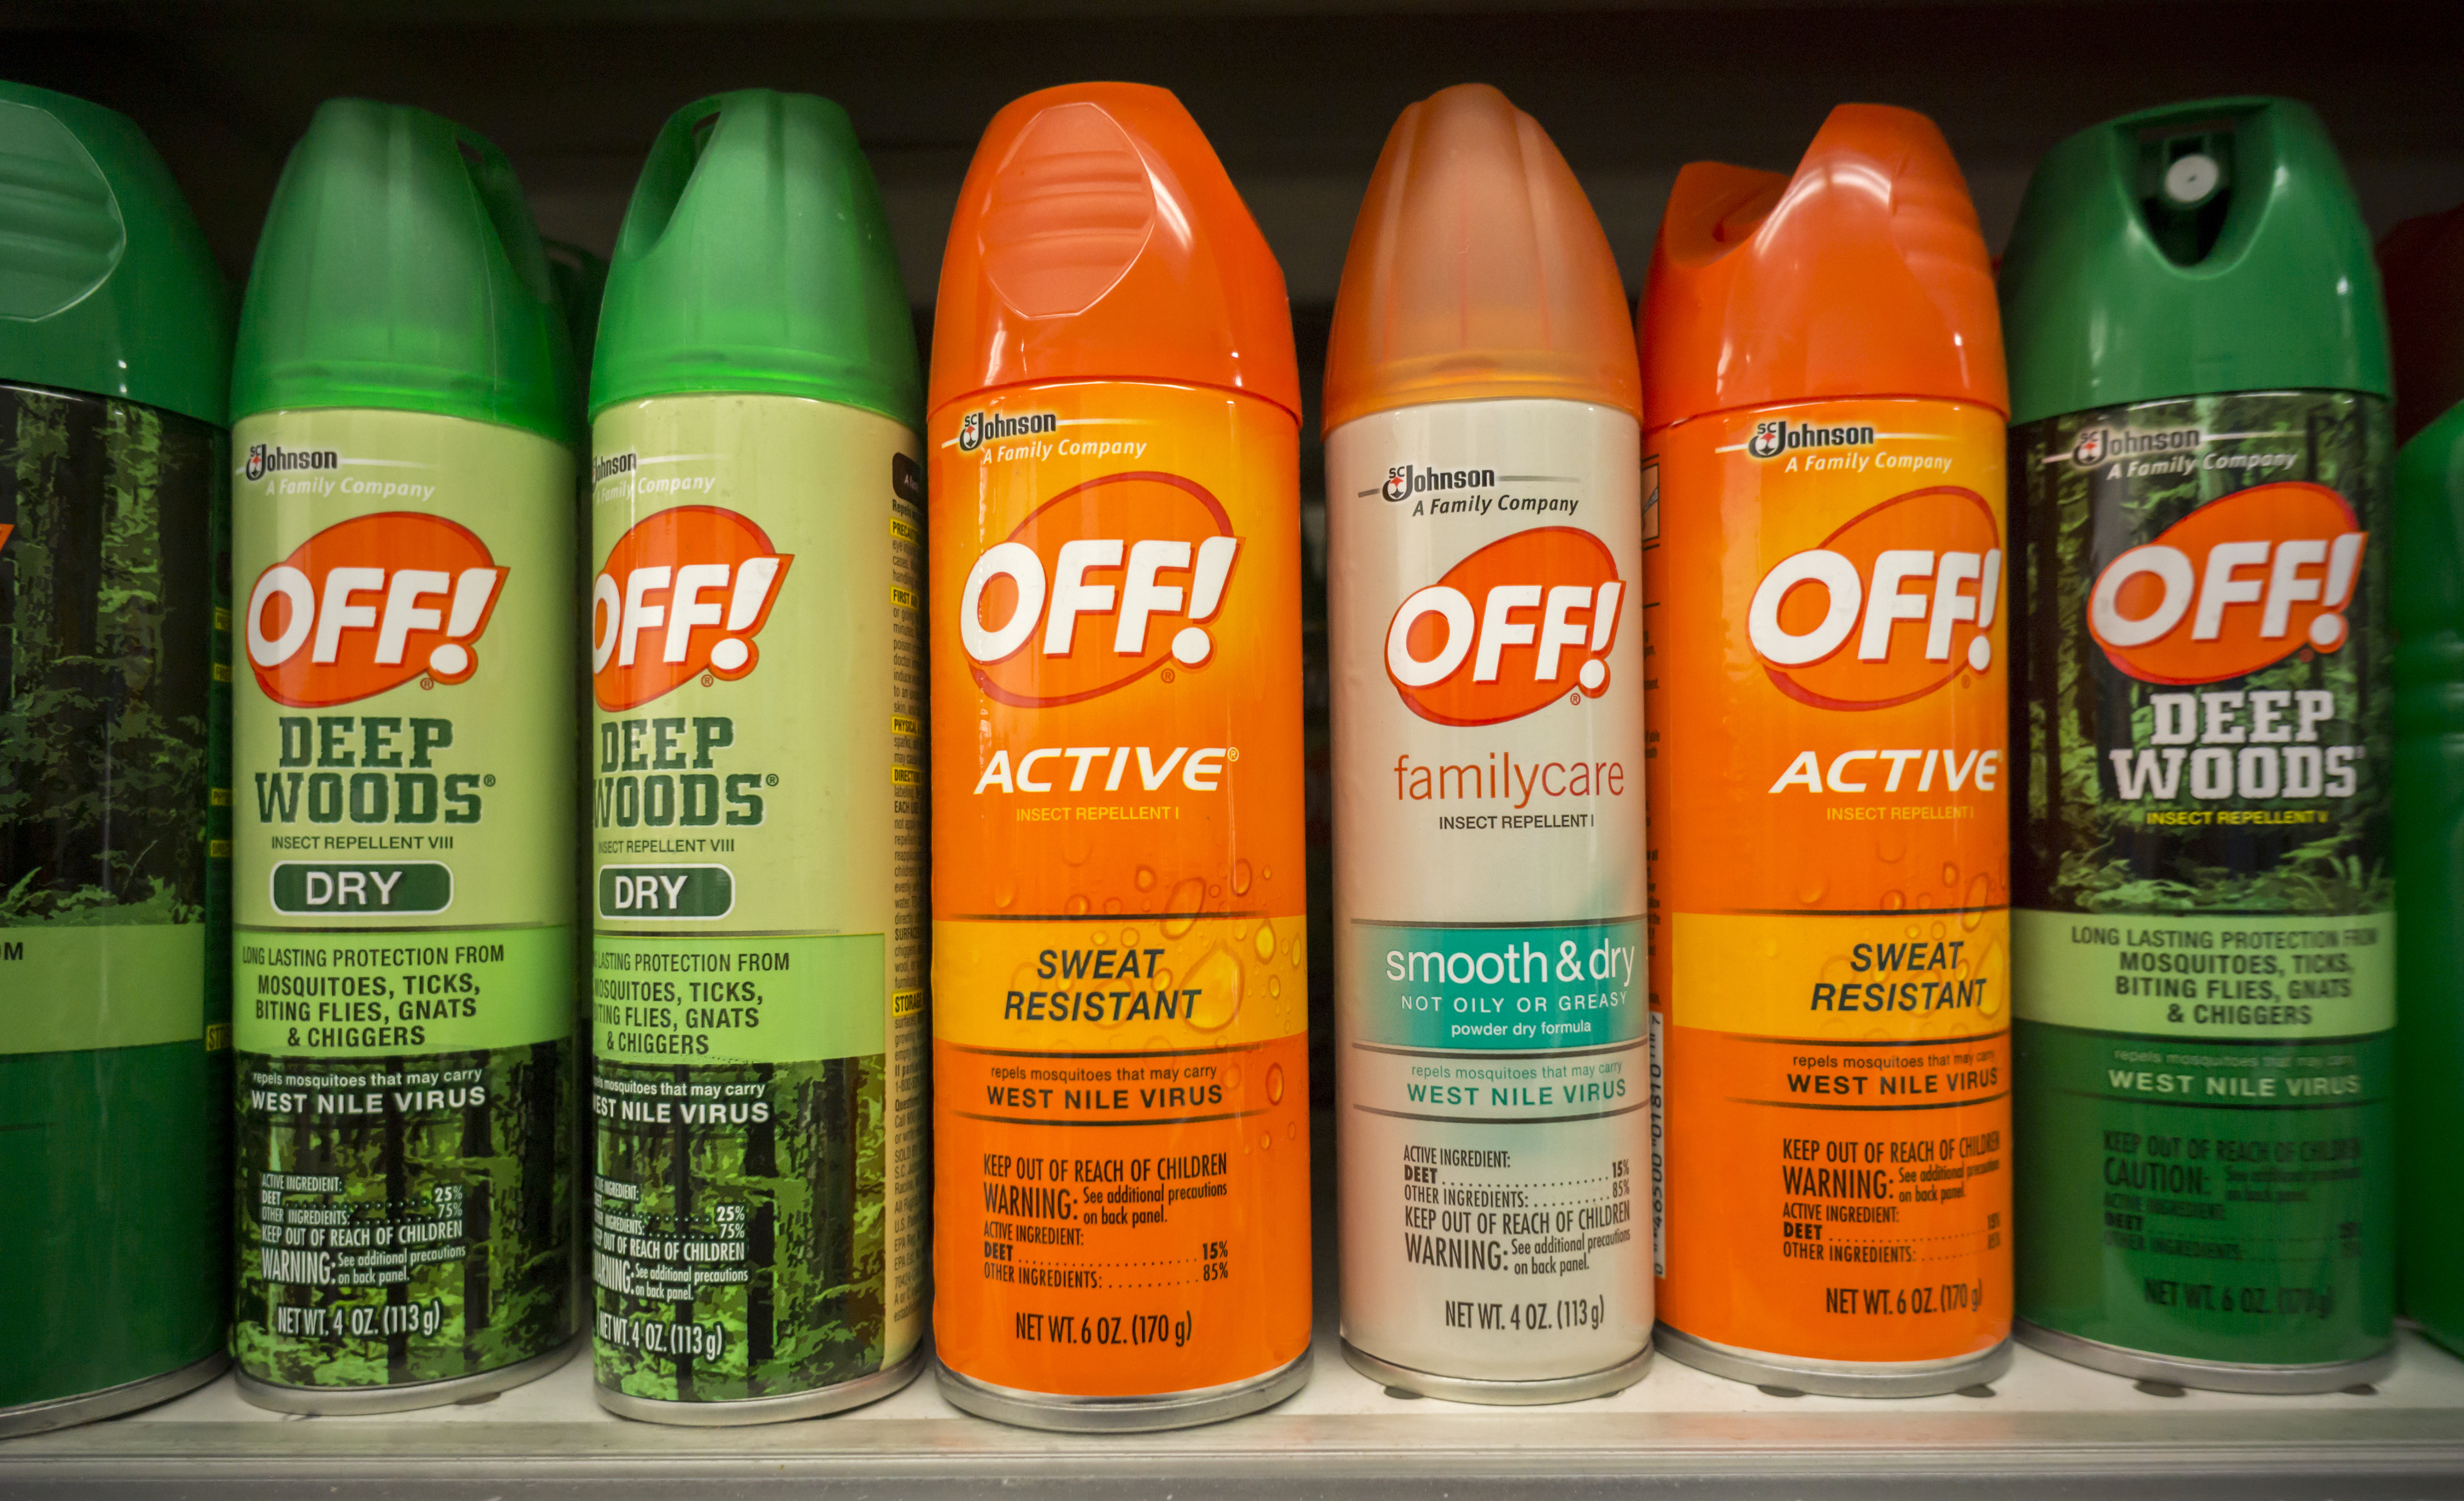 Rio 2016 Olympics Signs Off Insect Repellent To Combat Zika Fortune